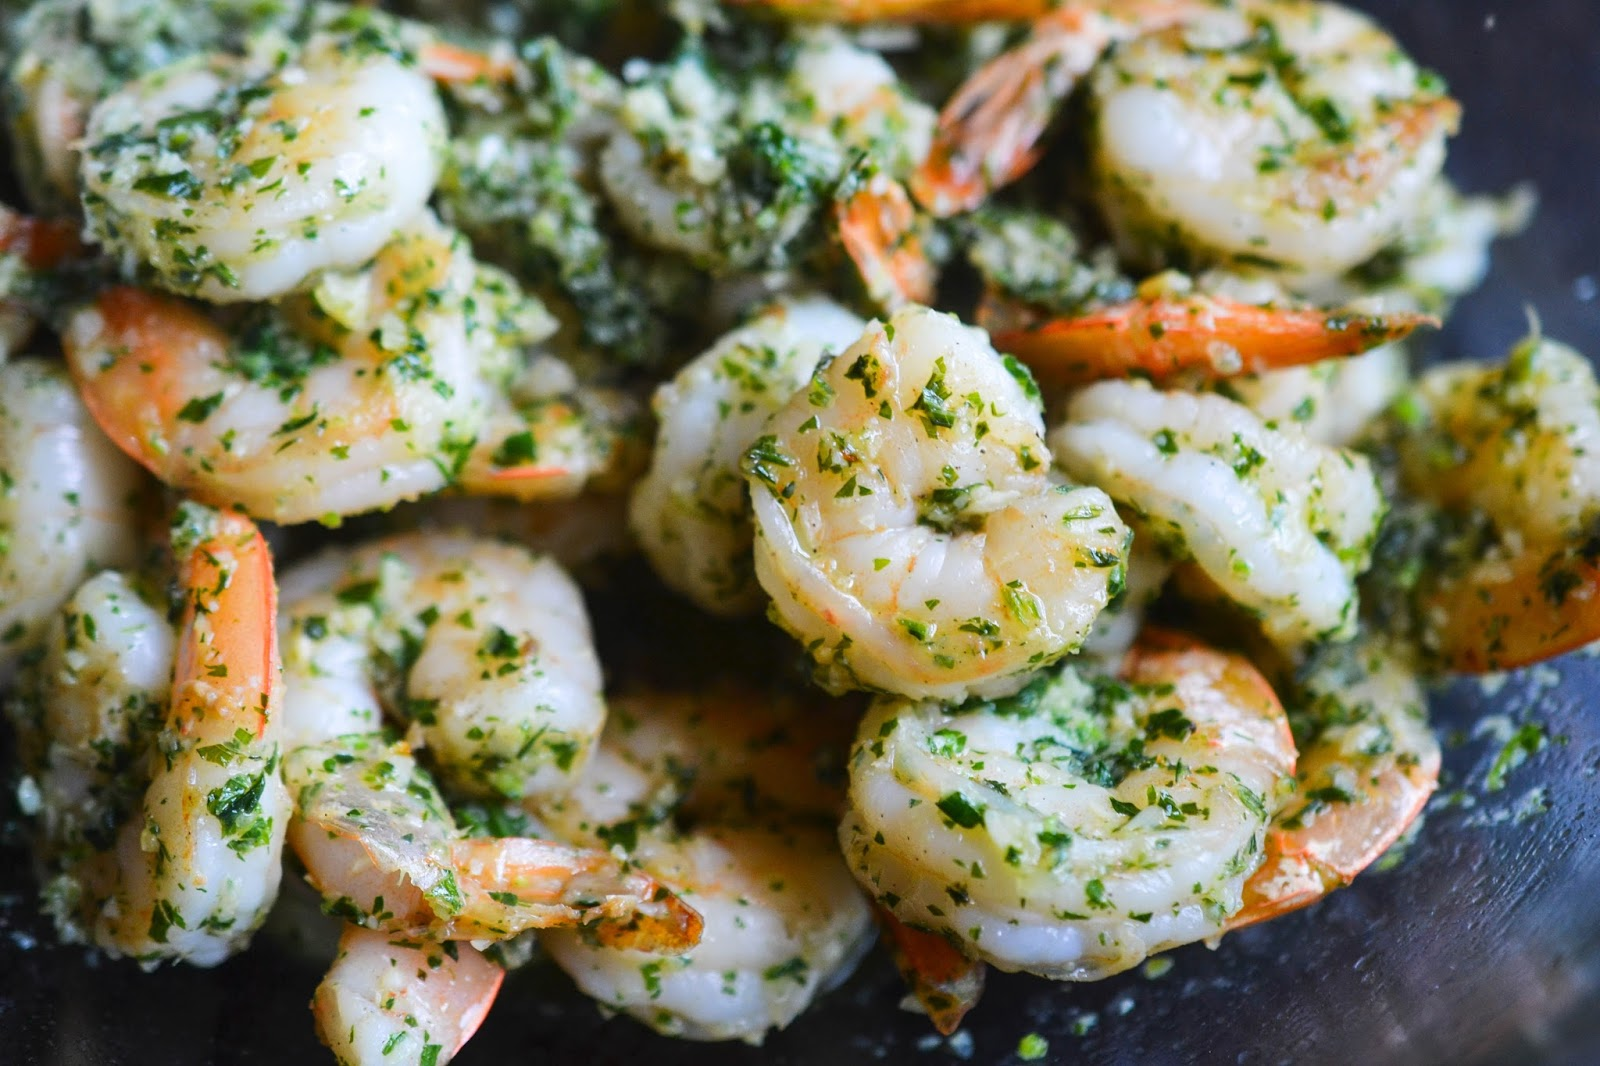 Greedy Girl : Garlic Shrimp